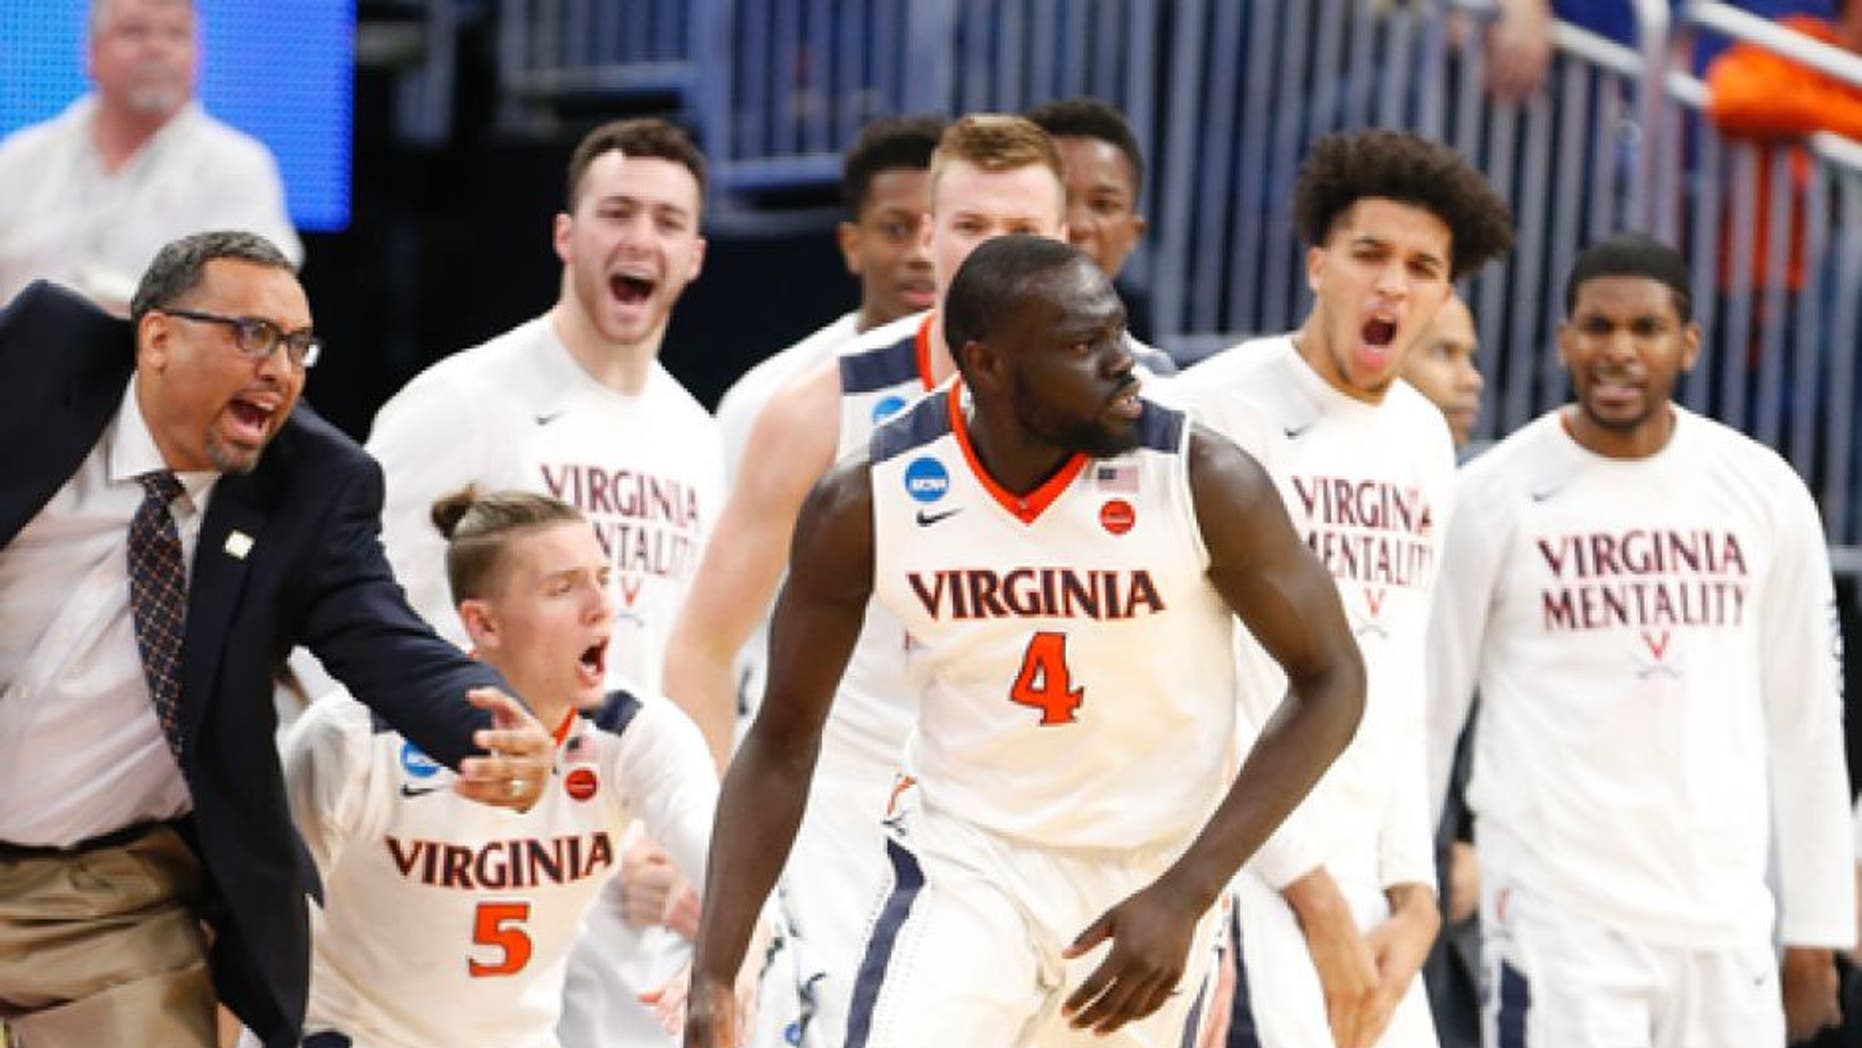 Players and coaches come off the bench as Virginia guard Marial Shayok (4) scores against UNC Wilmington during the second half of a first-round men's college basketball game in the NCAA Tournament, Thursday, March 16, 2017, in Orlando, Fla. Virginia defeated UNC Wilmington 76-71. (AP Photo/Wilfredo Lee)